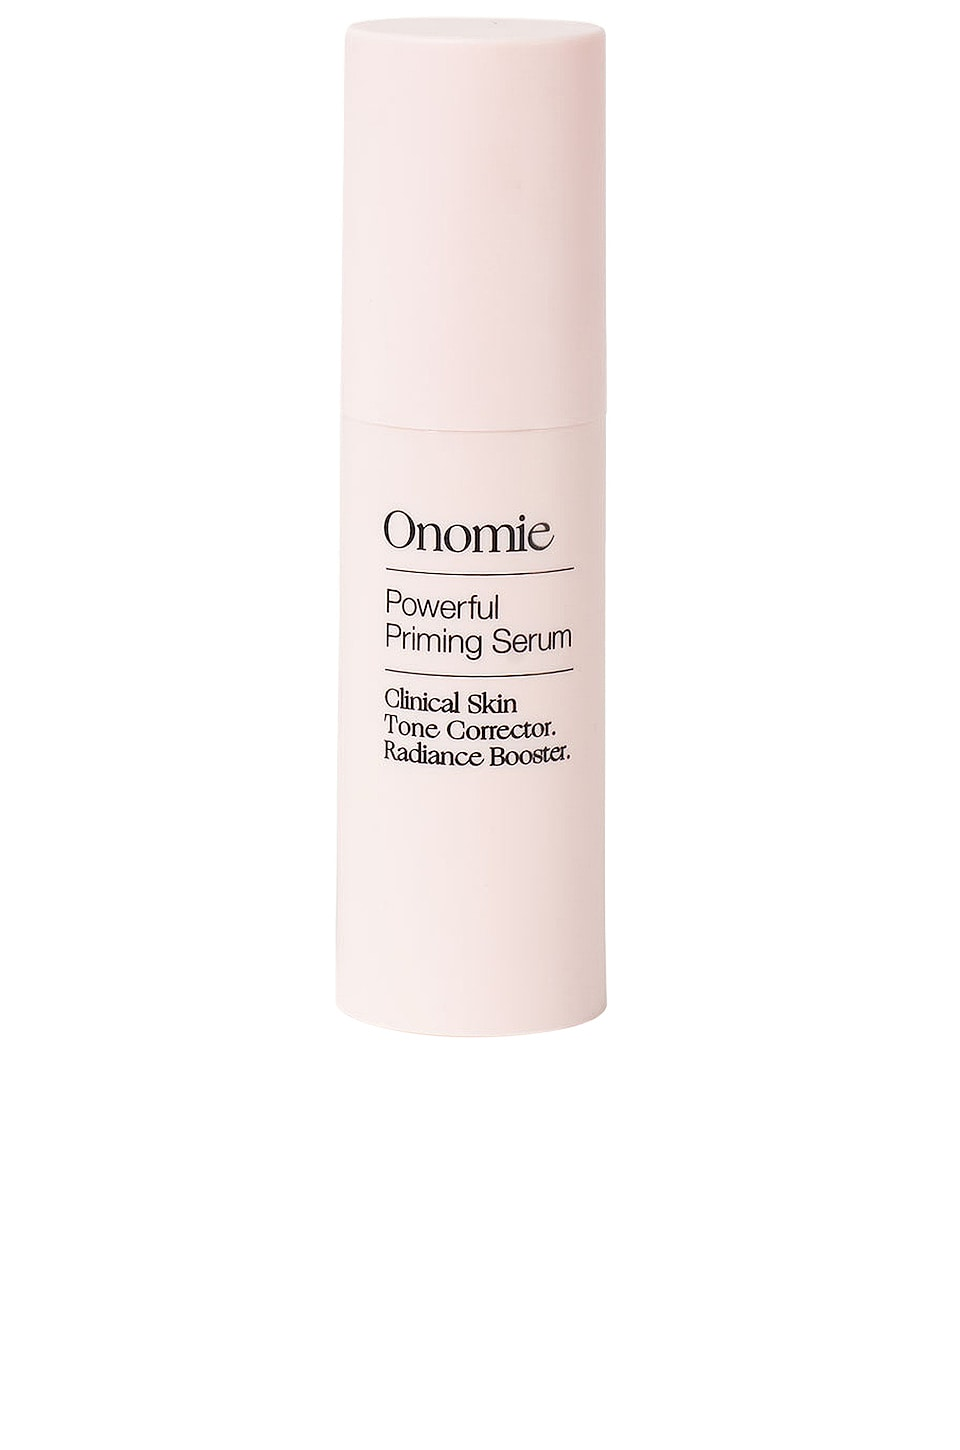 Onomie Powerful Priming Serum in Truth